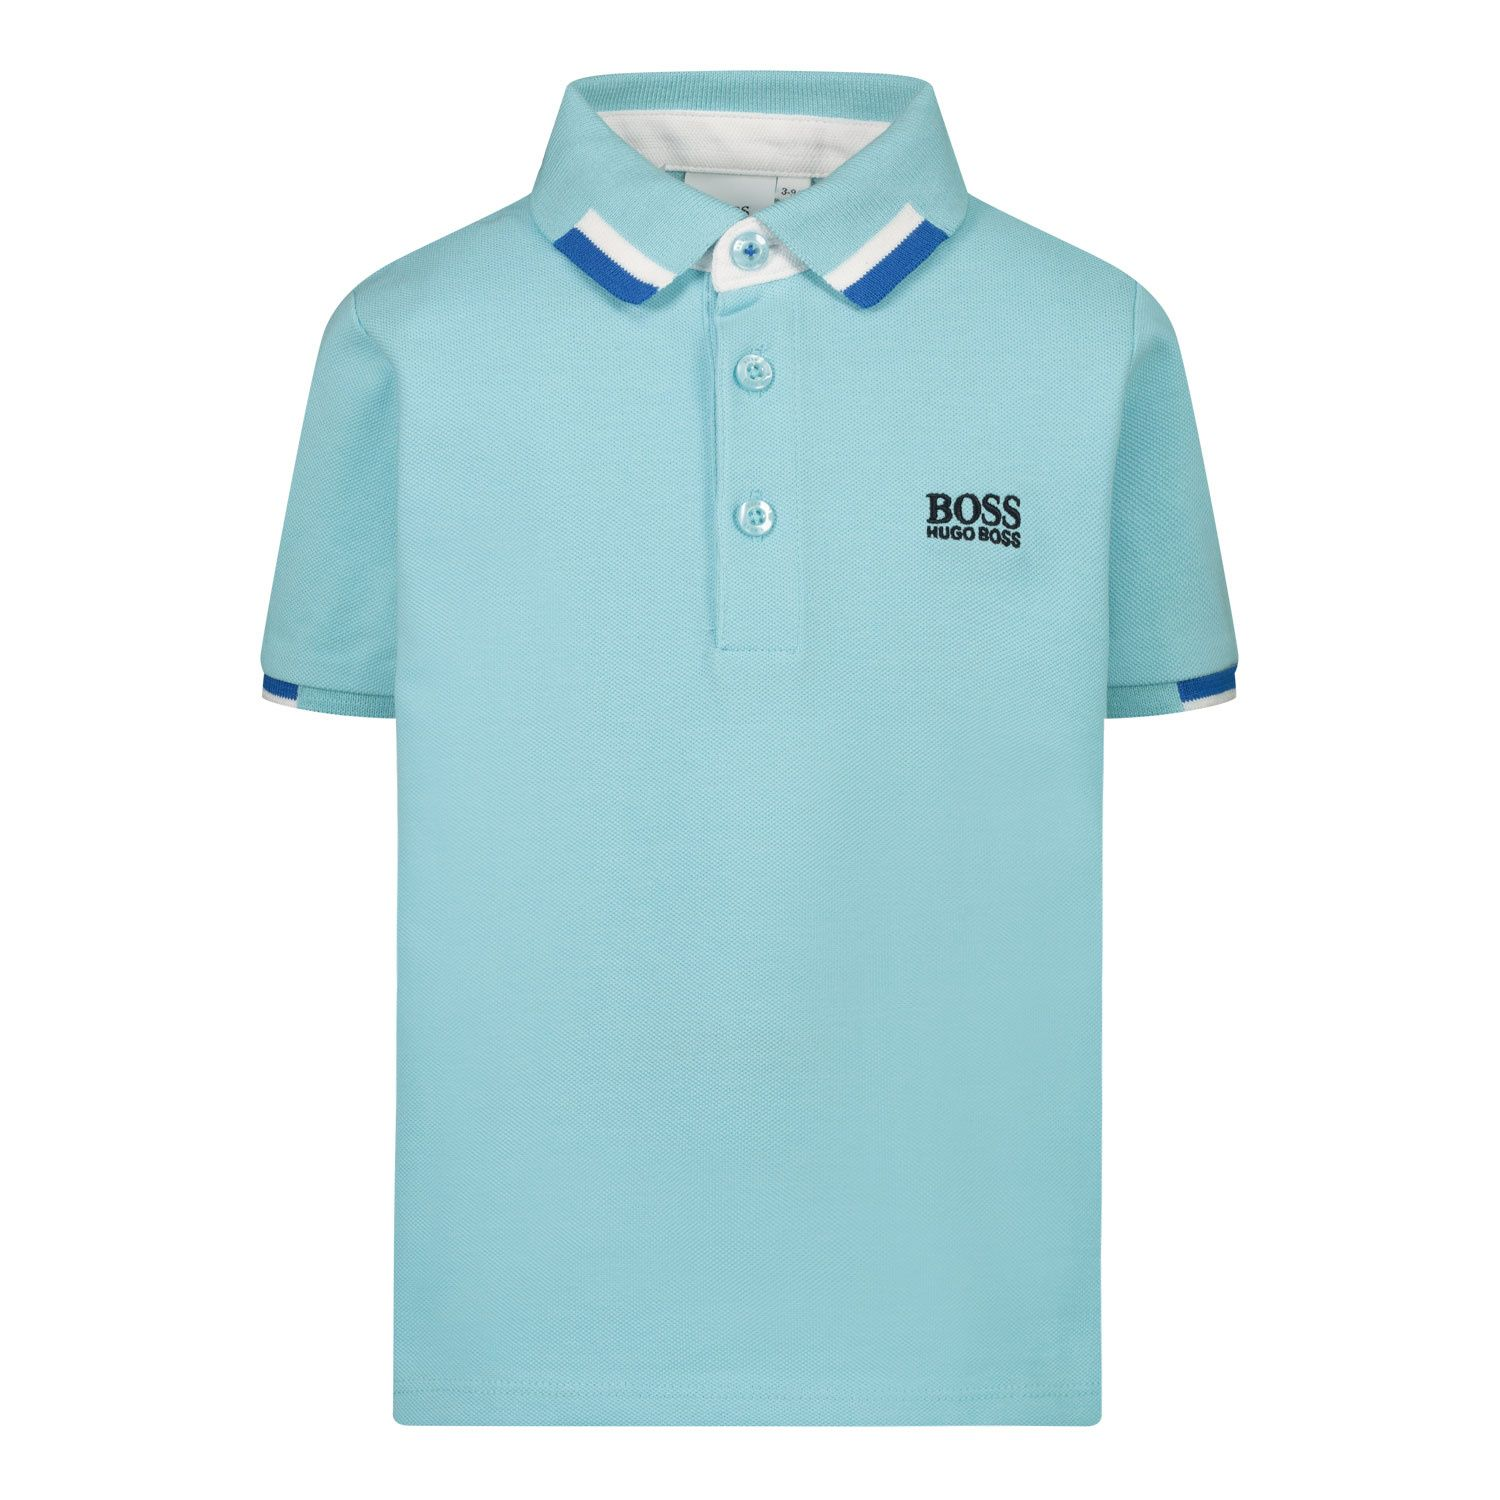 Picture of Boss J05847 baby poloshirt turquoise